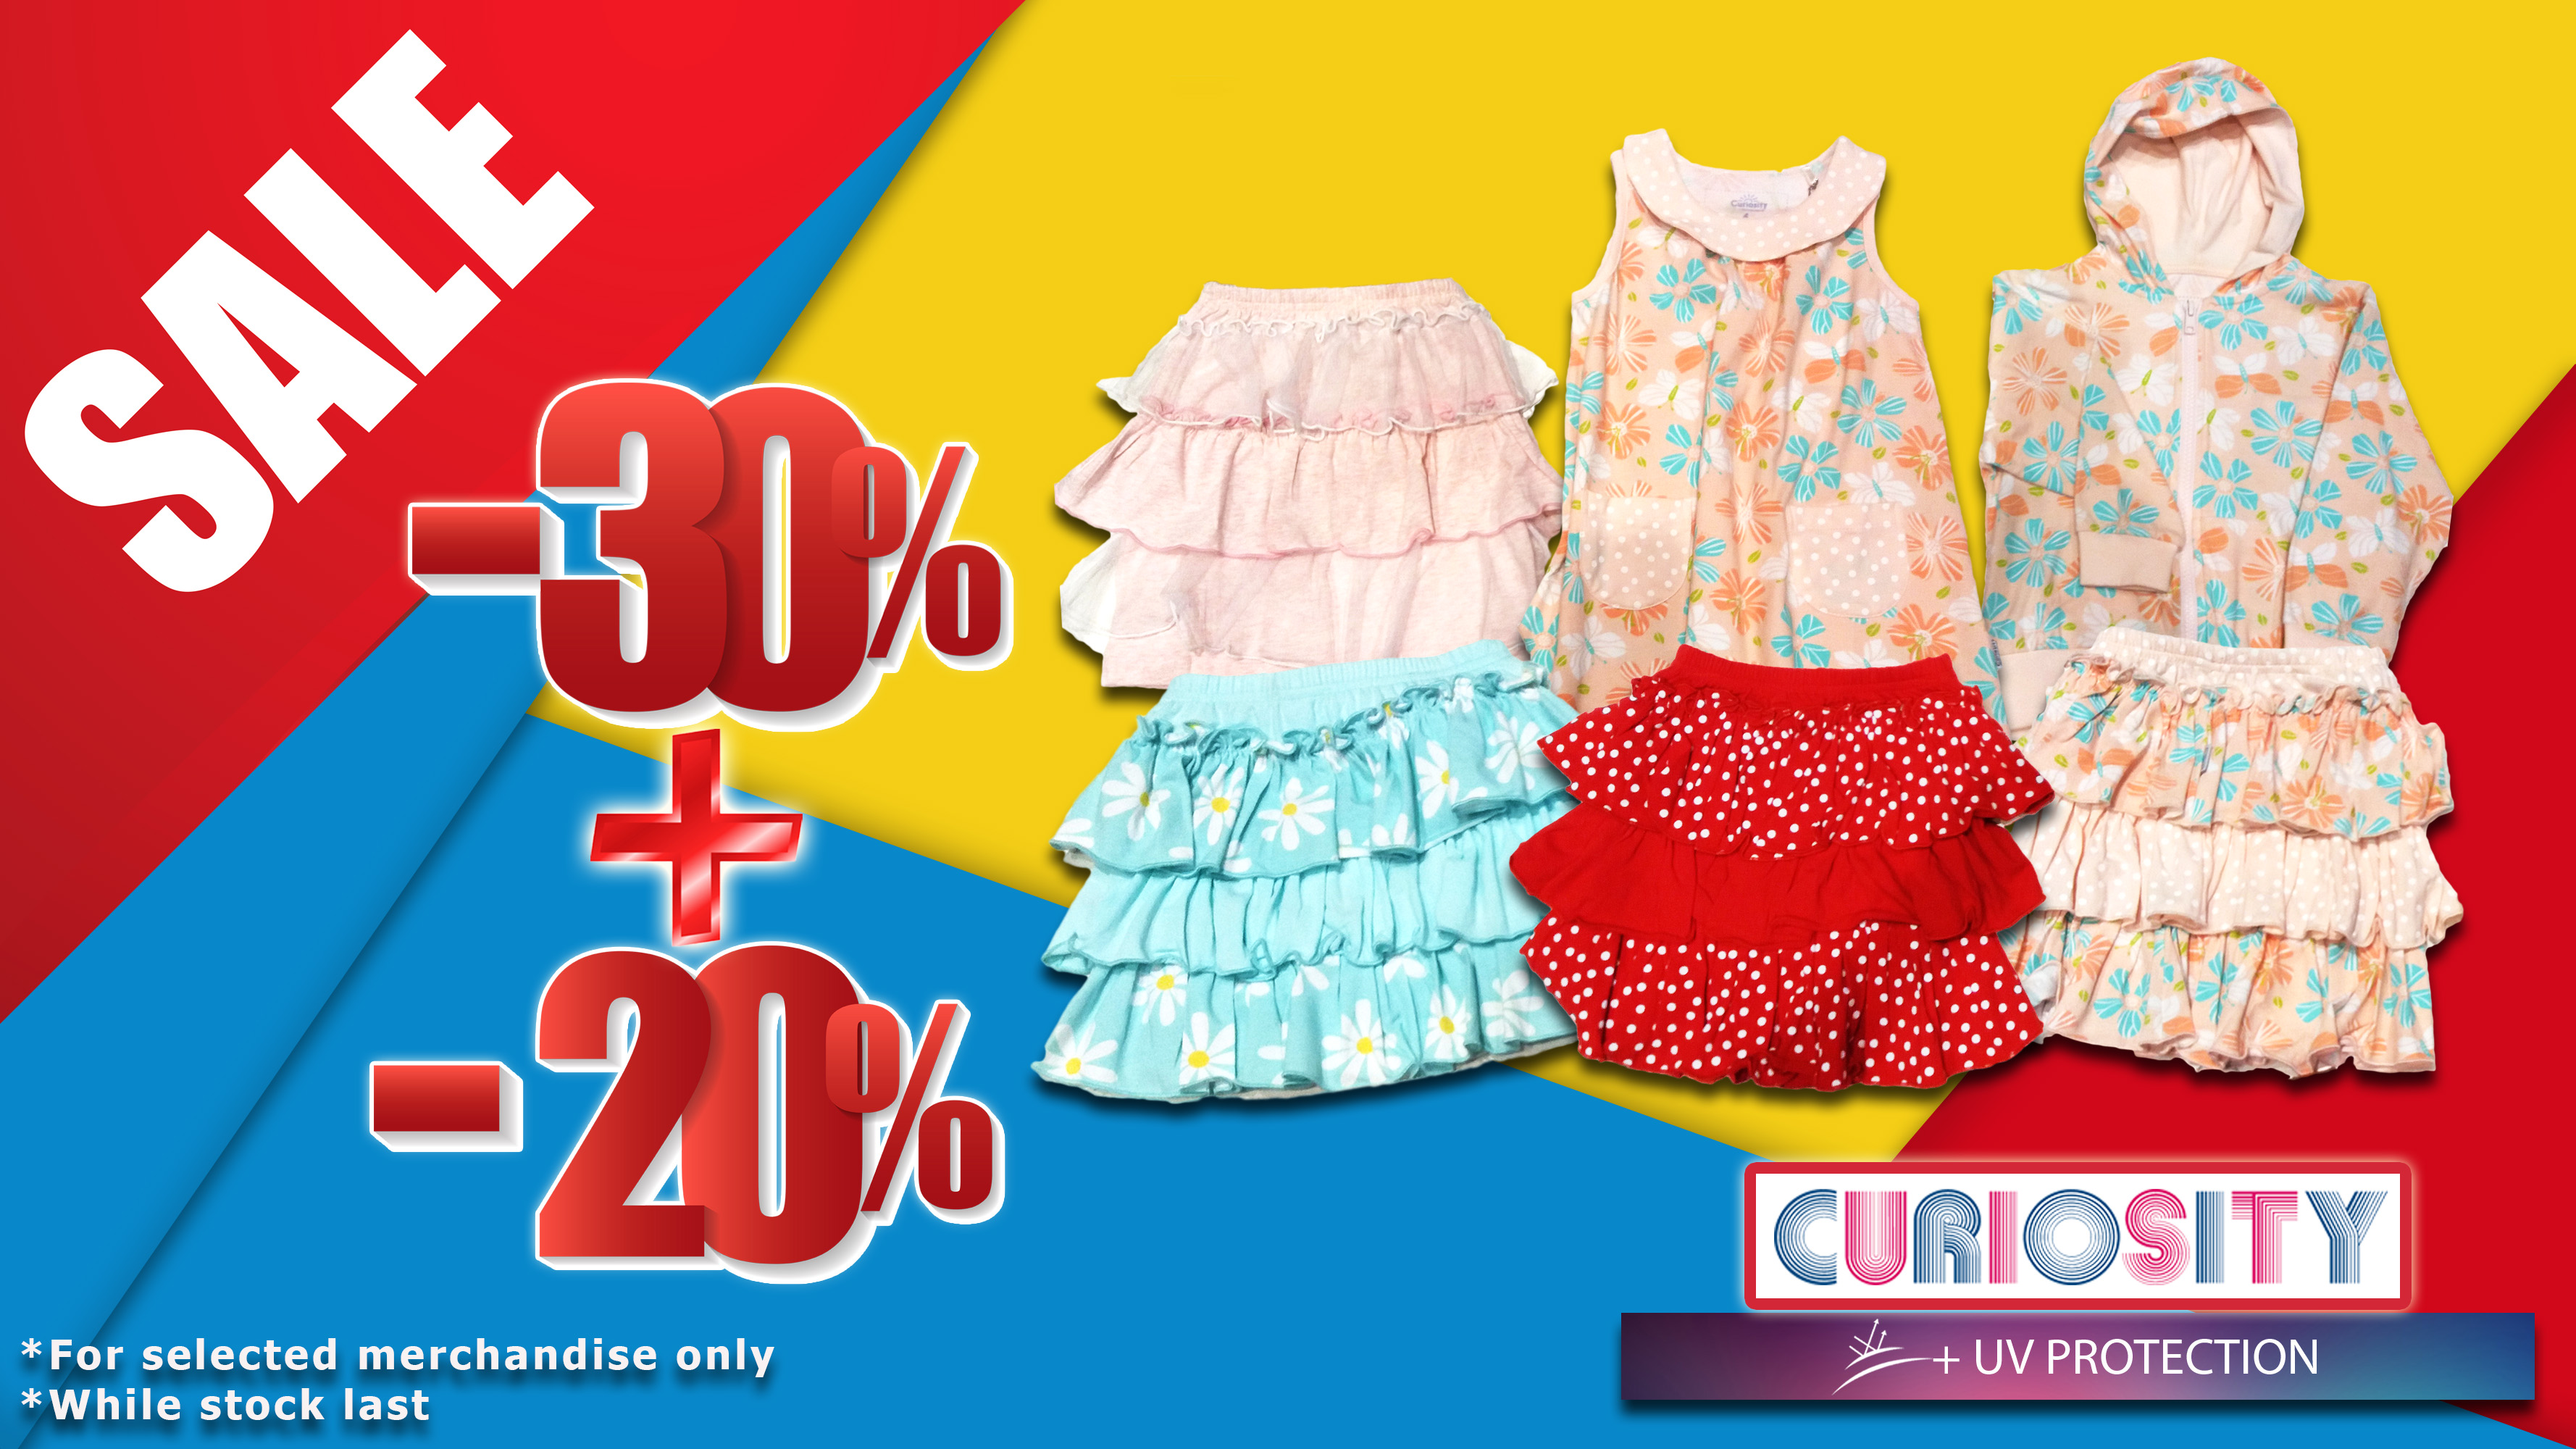 02 SALES 30� and 20�